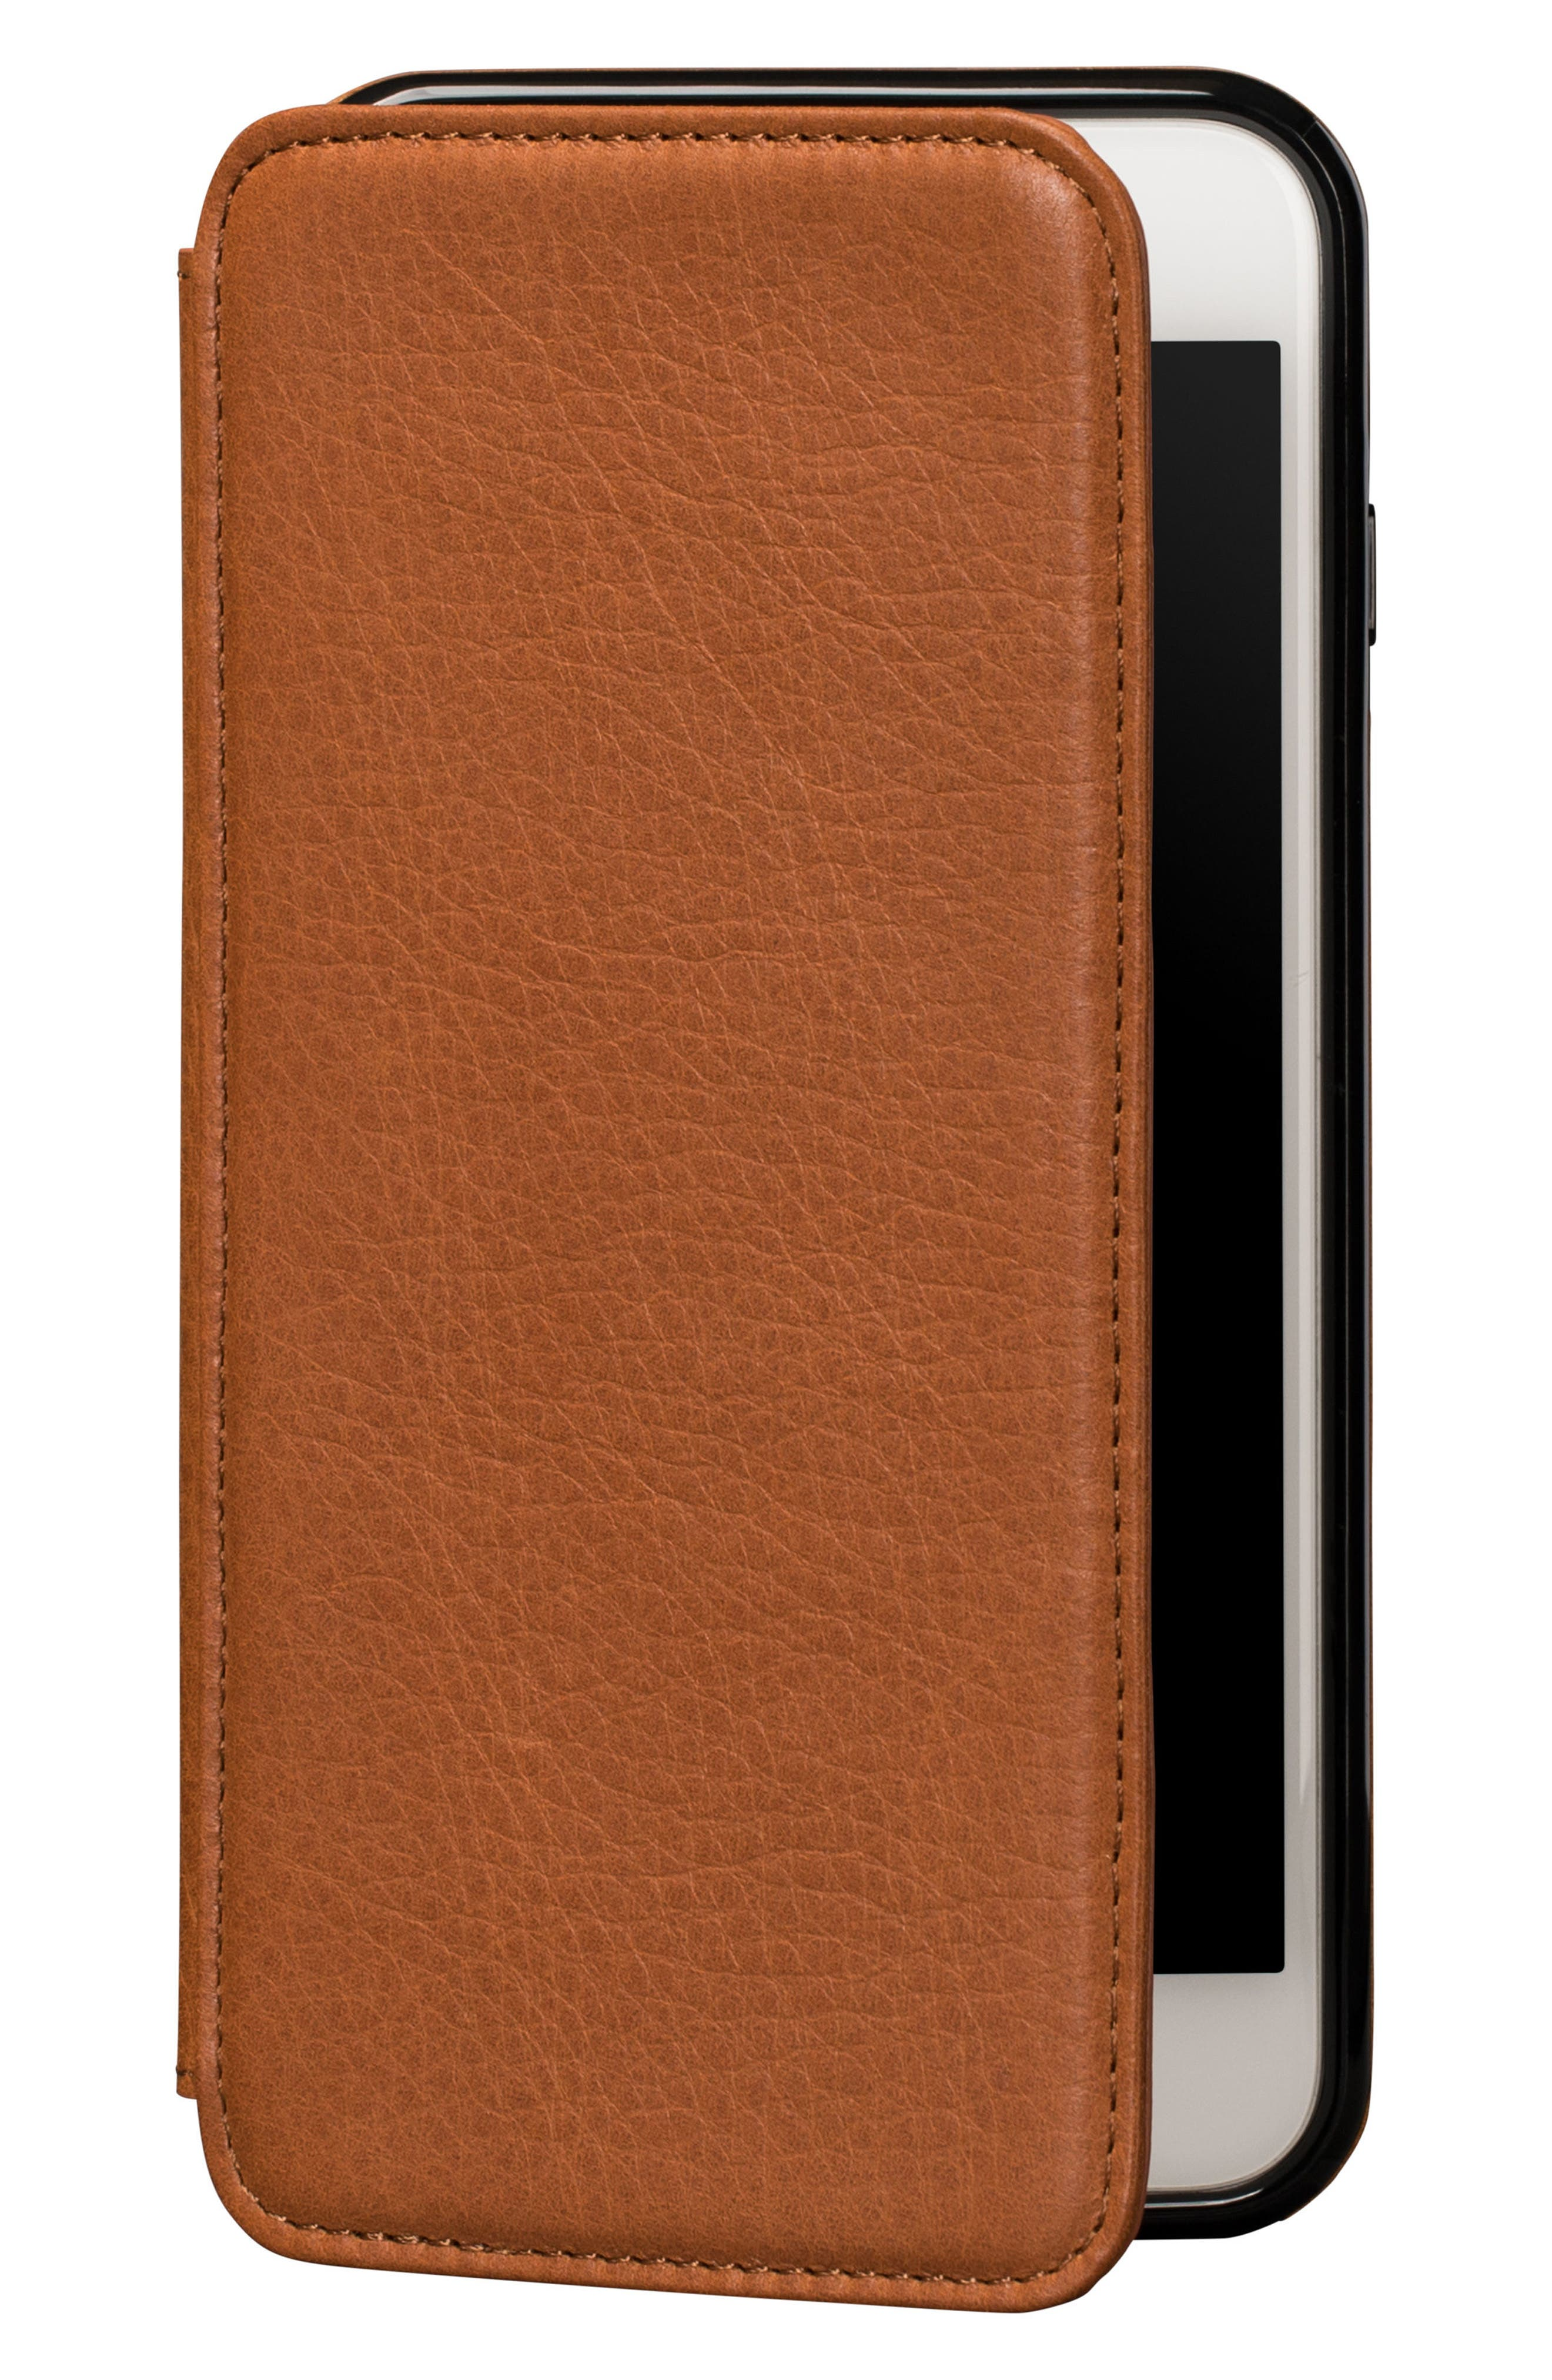 Bence iPhone 7/8 Plus Walletbook,                         Main,                         color, SADDLE